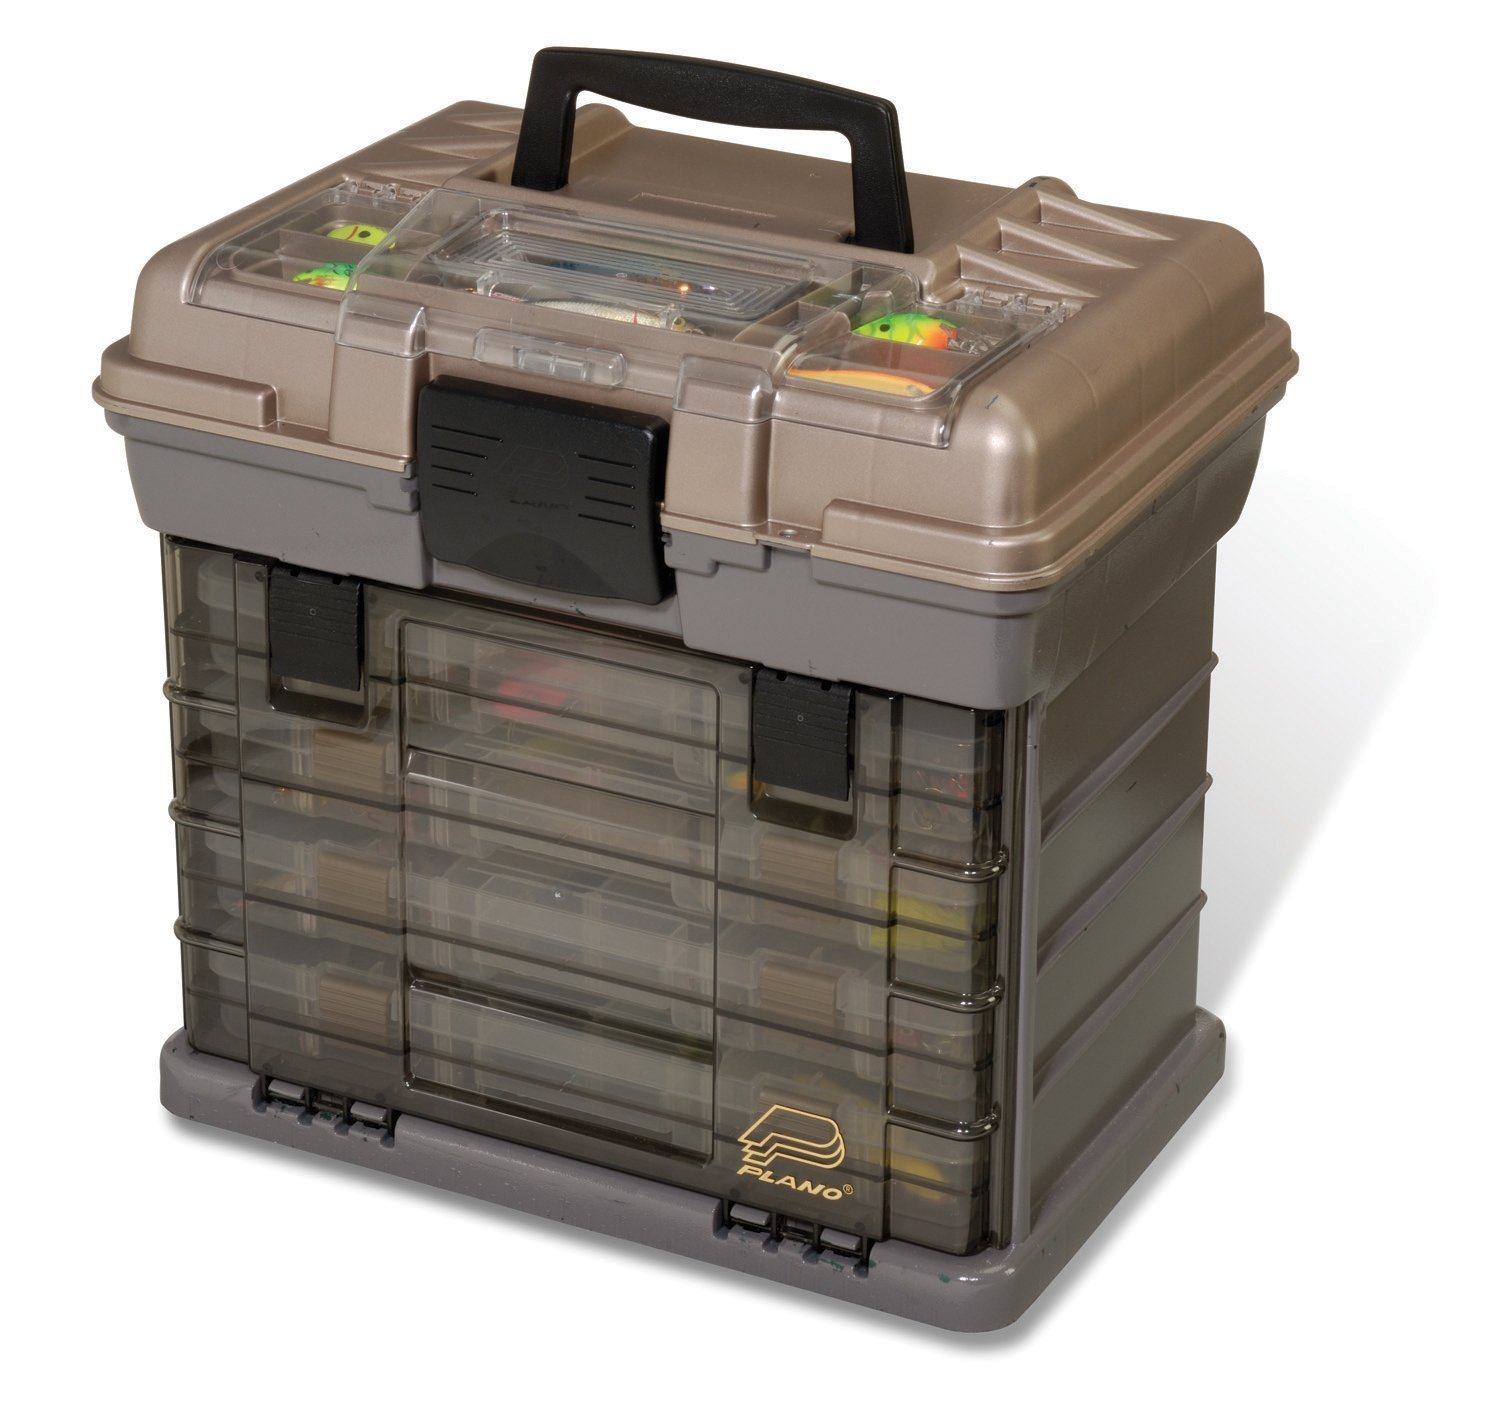 Plano 1374 4-By Rack System 3700 Size Tackle Box by Plano